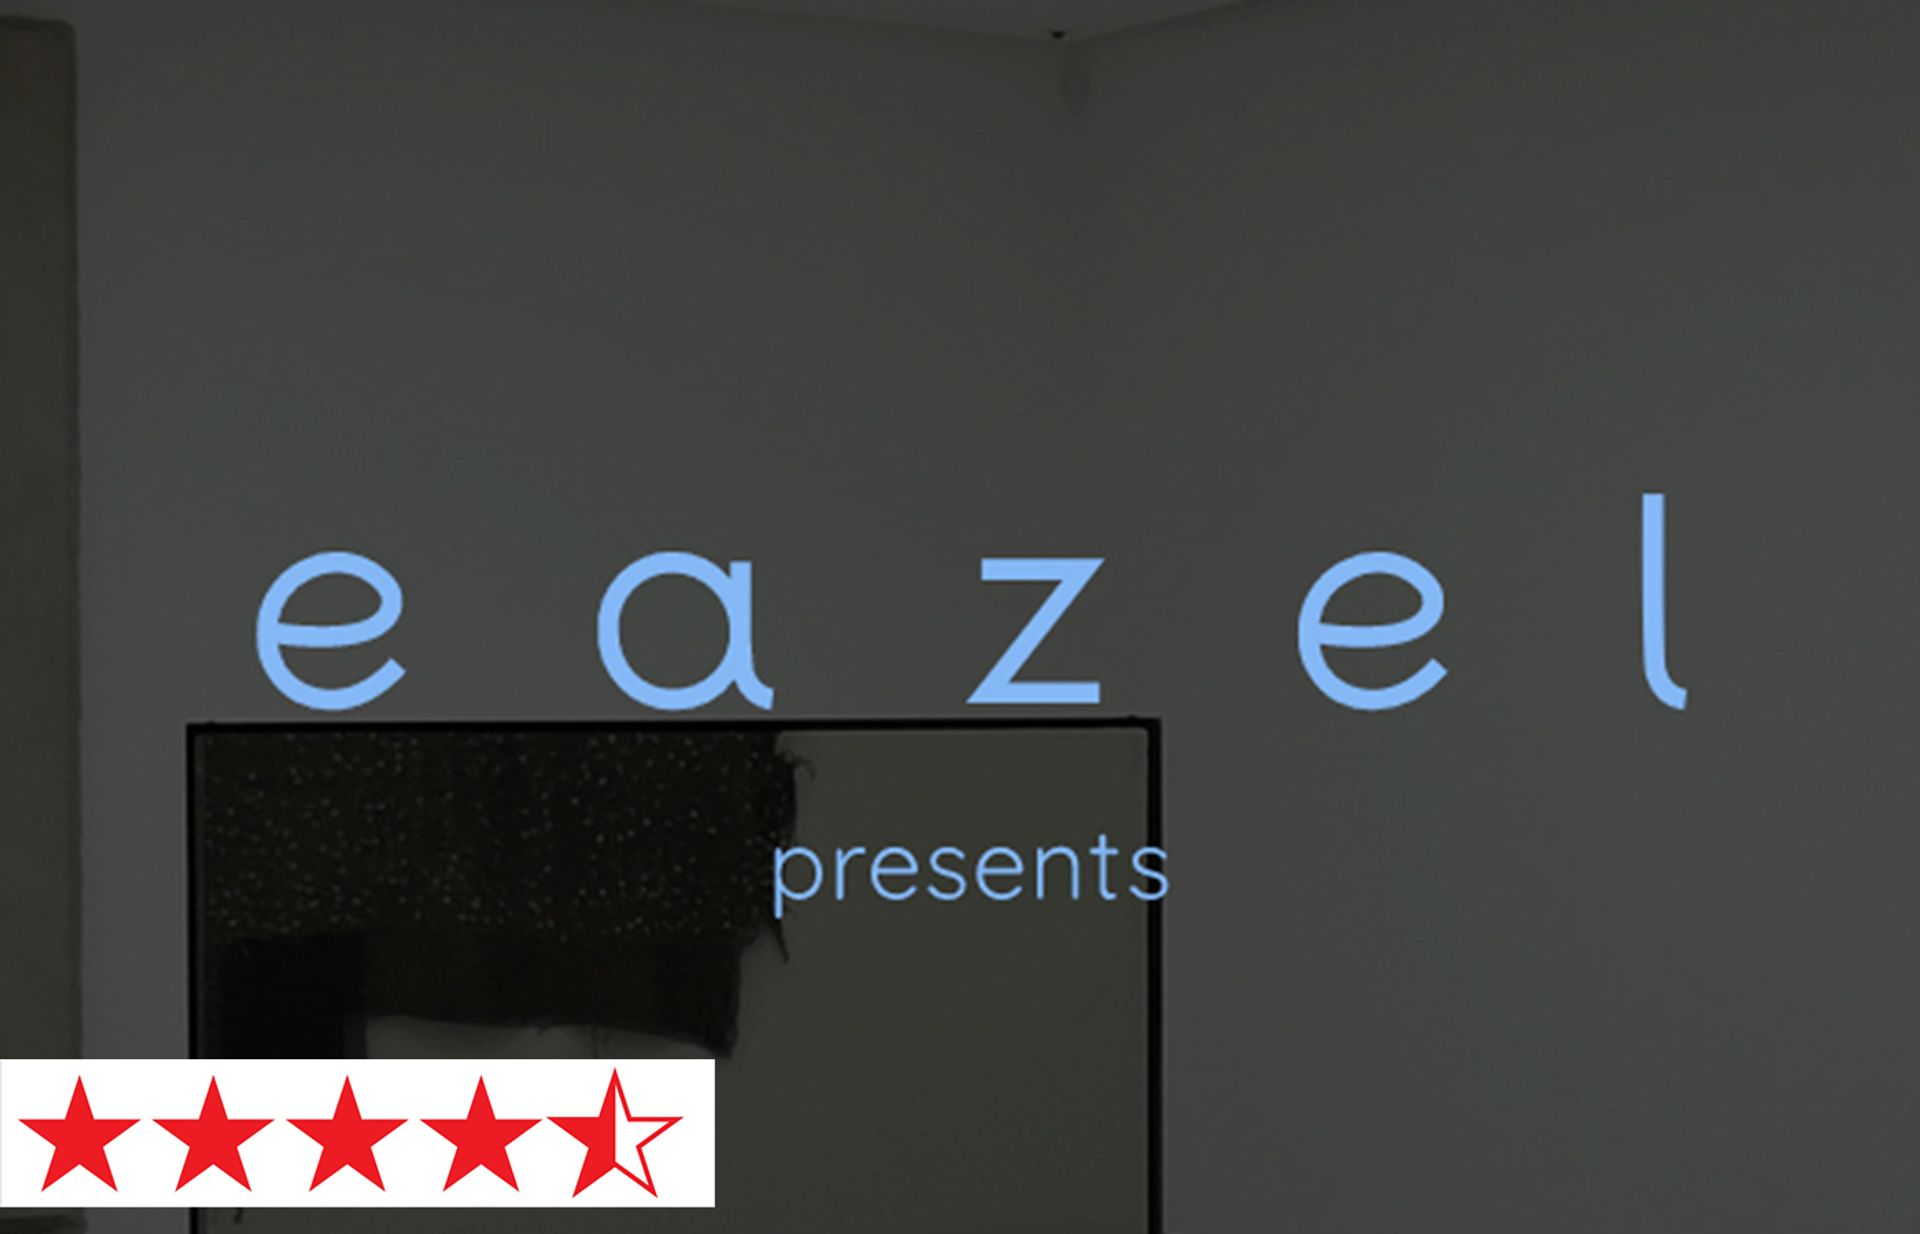 Eazel is a complete, self-contained, digital art ecosystem